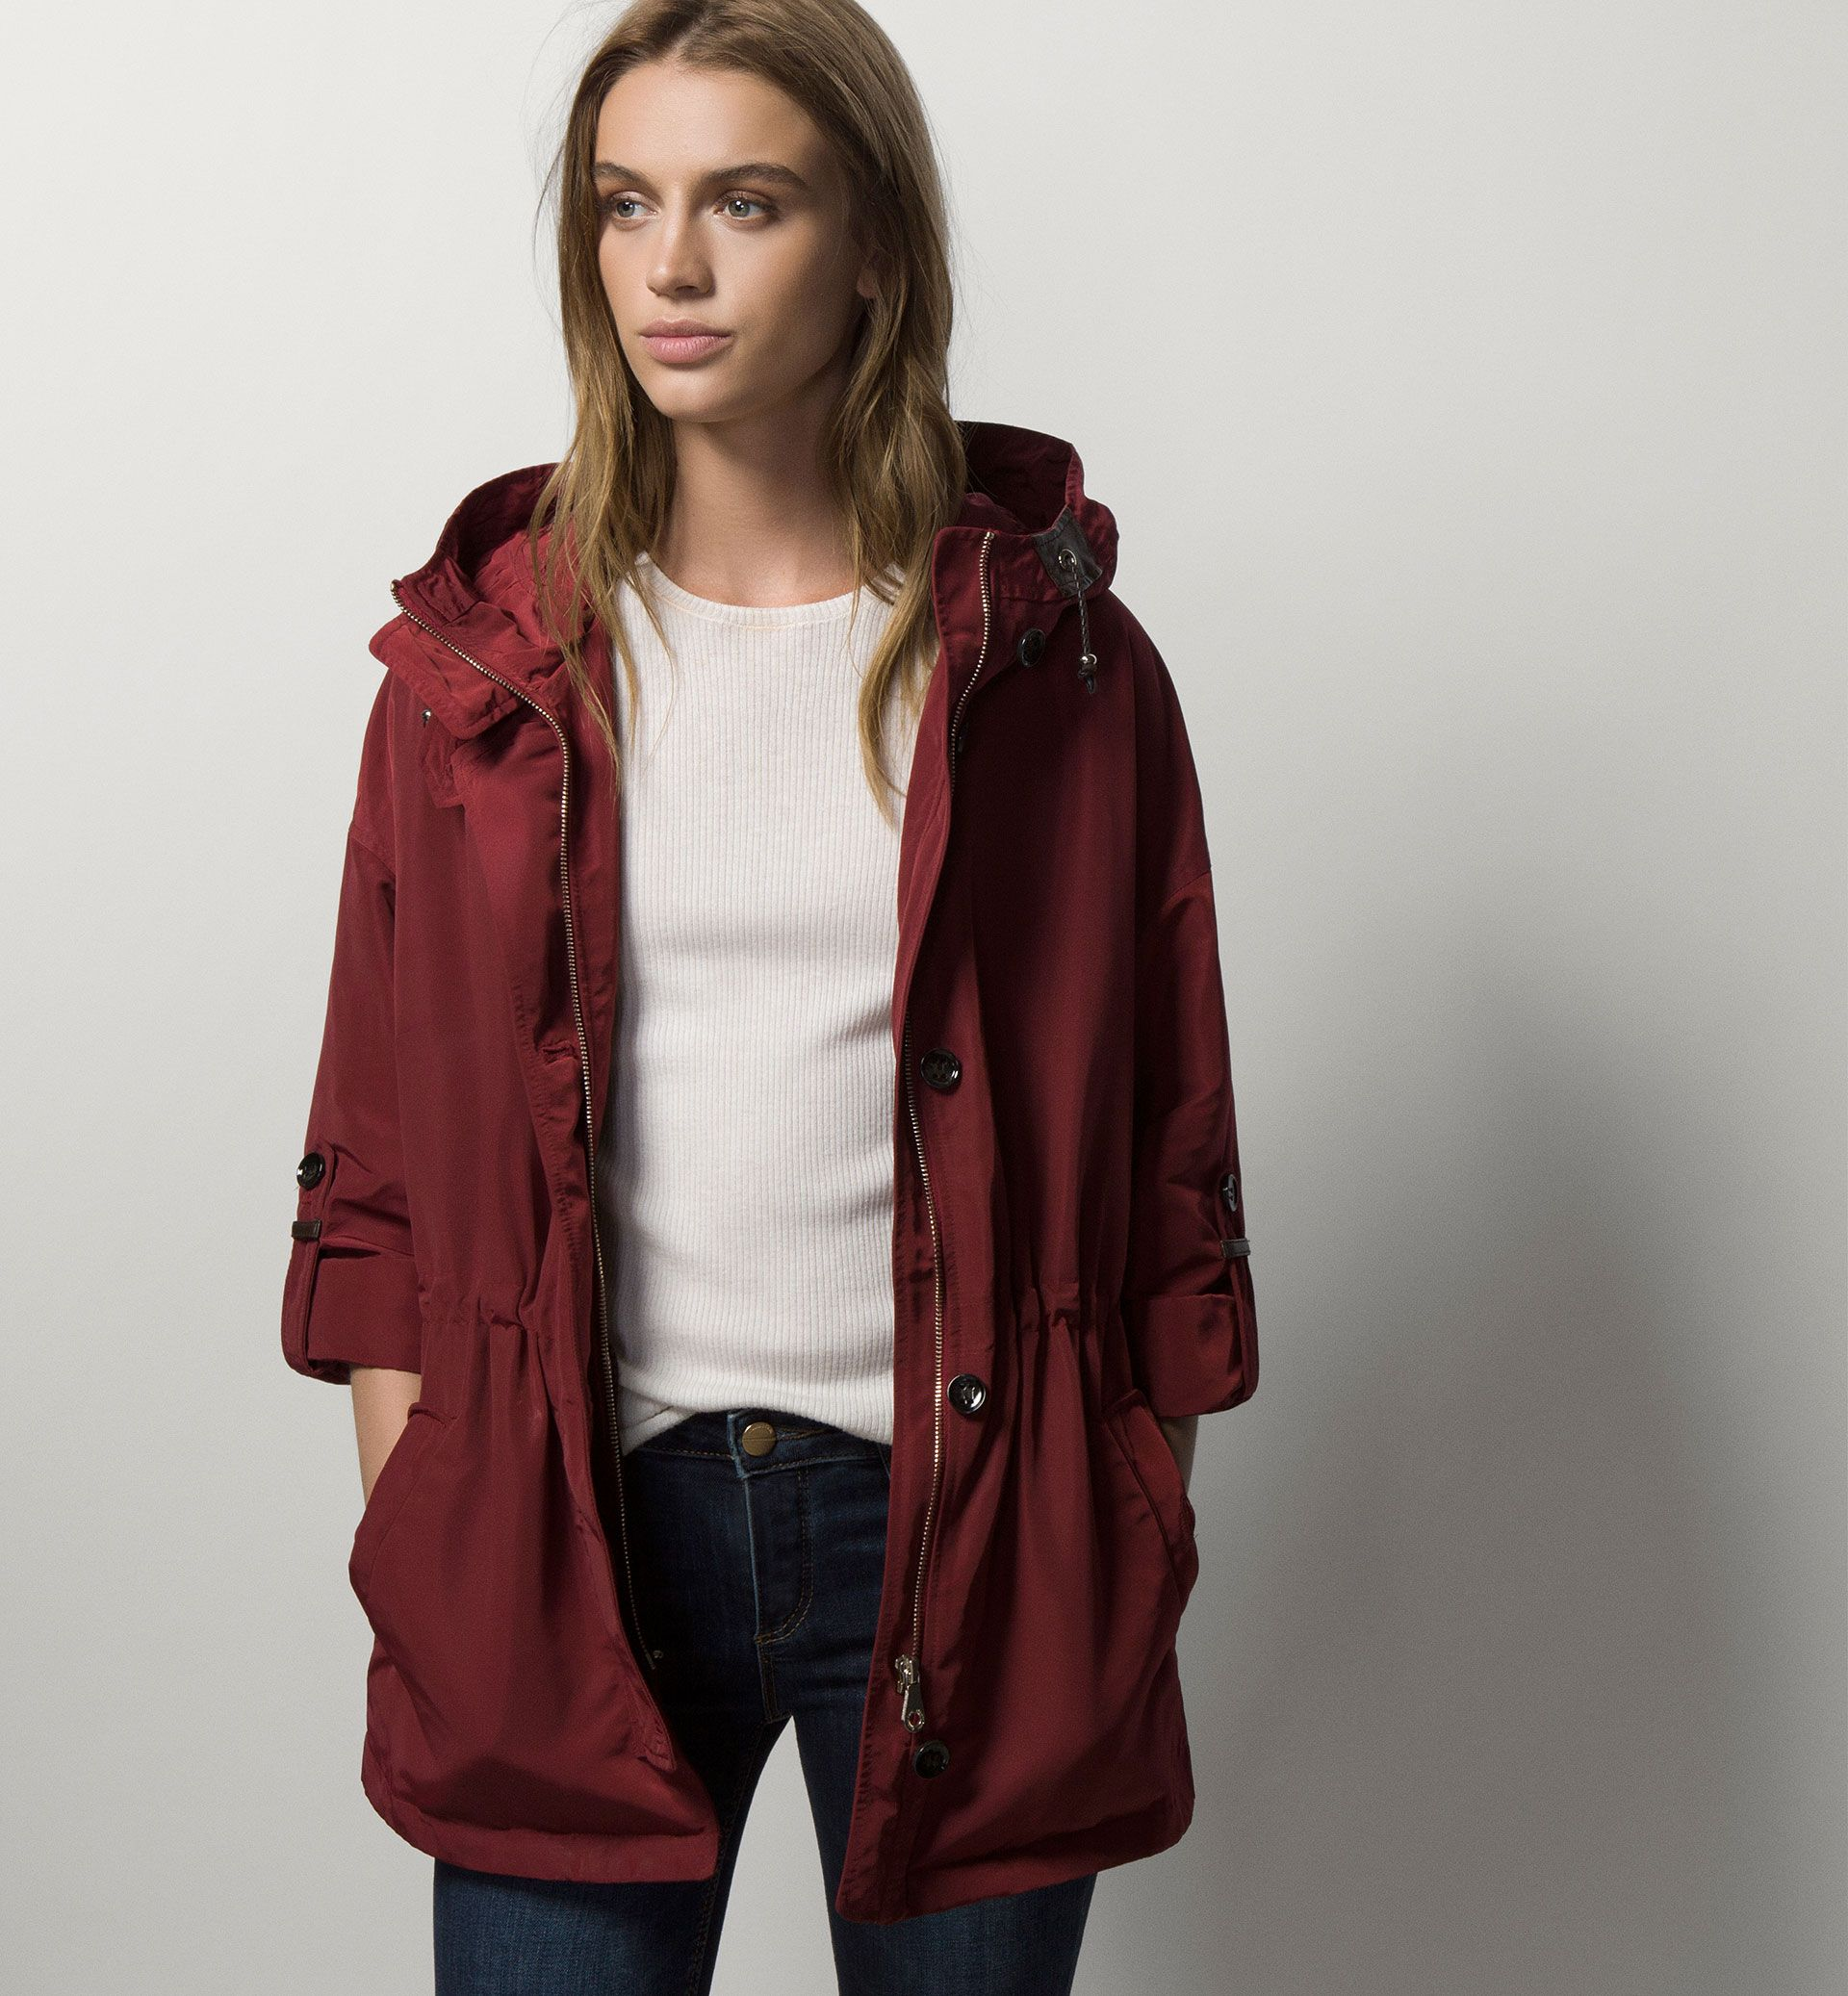 Online shopping for popular & hot Burgundy Long Coat from Women's Clothing & Accessories, Trench, Wool & Blends, Basic Jackets and more related Burgundy Long Coat like Burgundy Long Coat. Discover over of the best Selection Burgundy Long Coat on mediacrucialxa.cf Besides, various selected Burgundy Long Coat brands are prepared for you to choose.